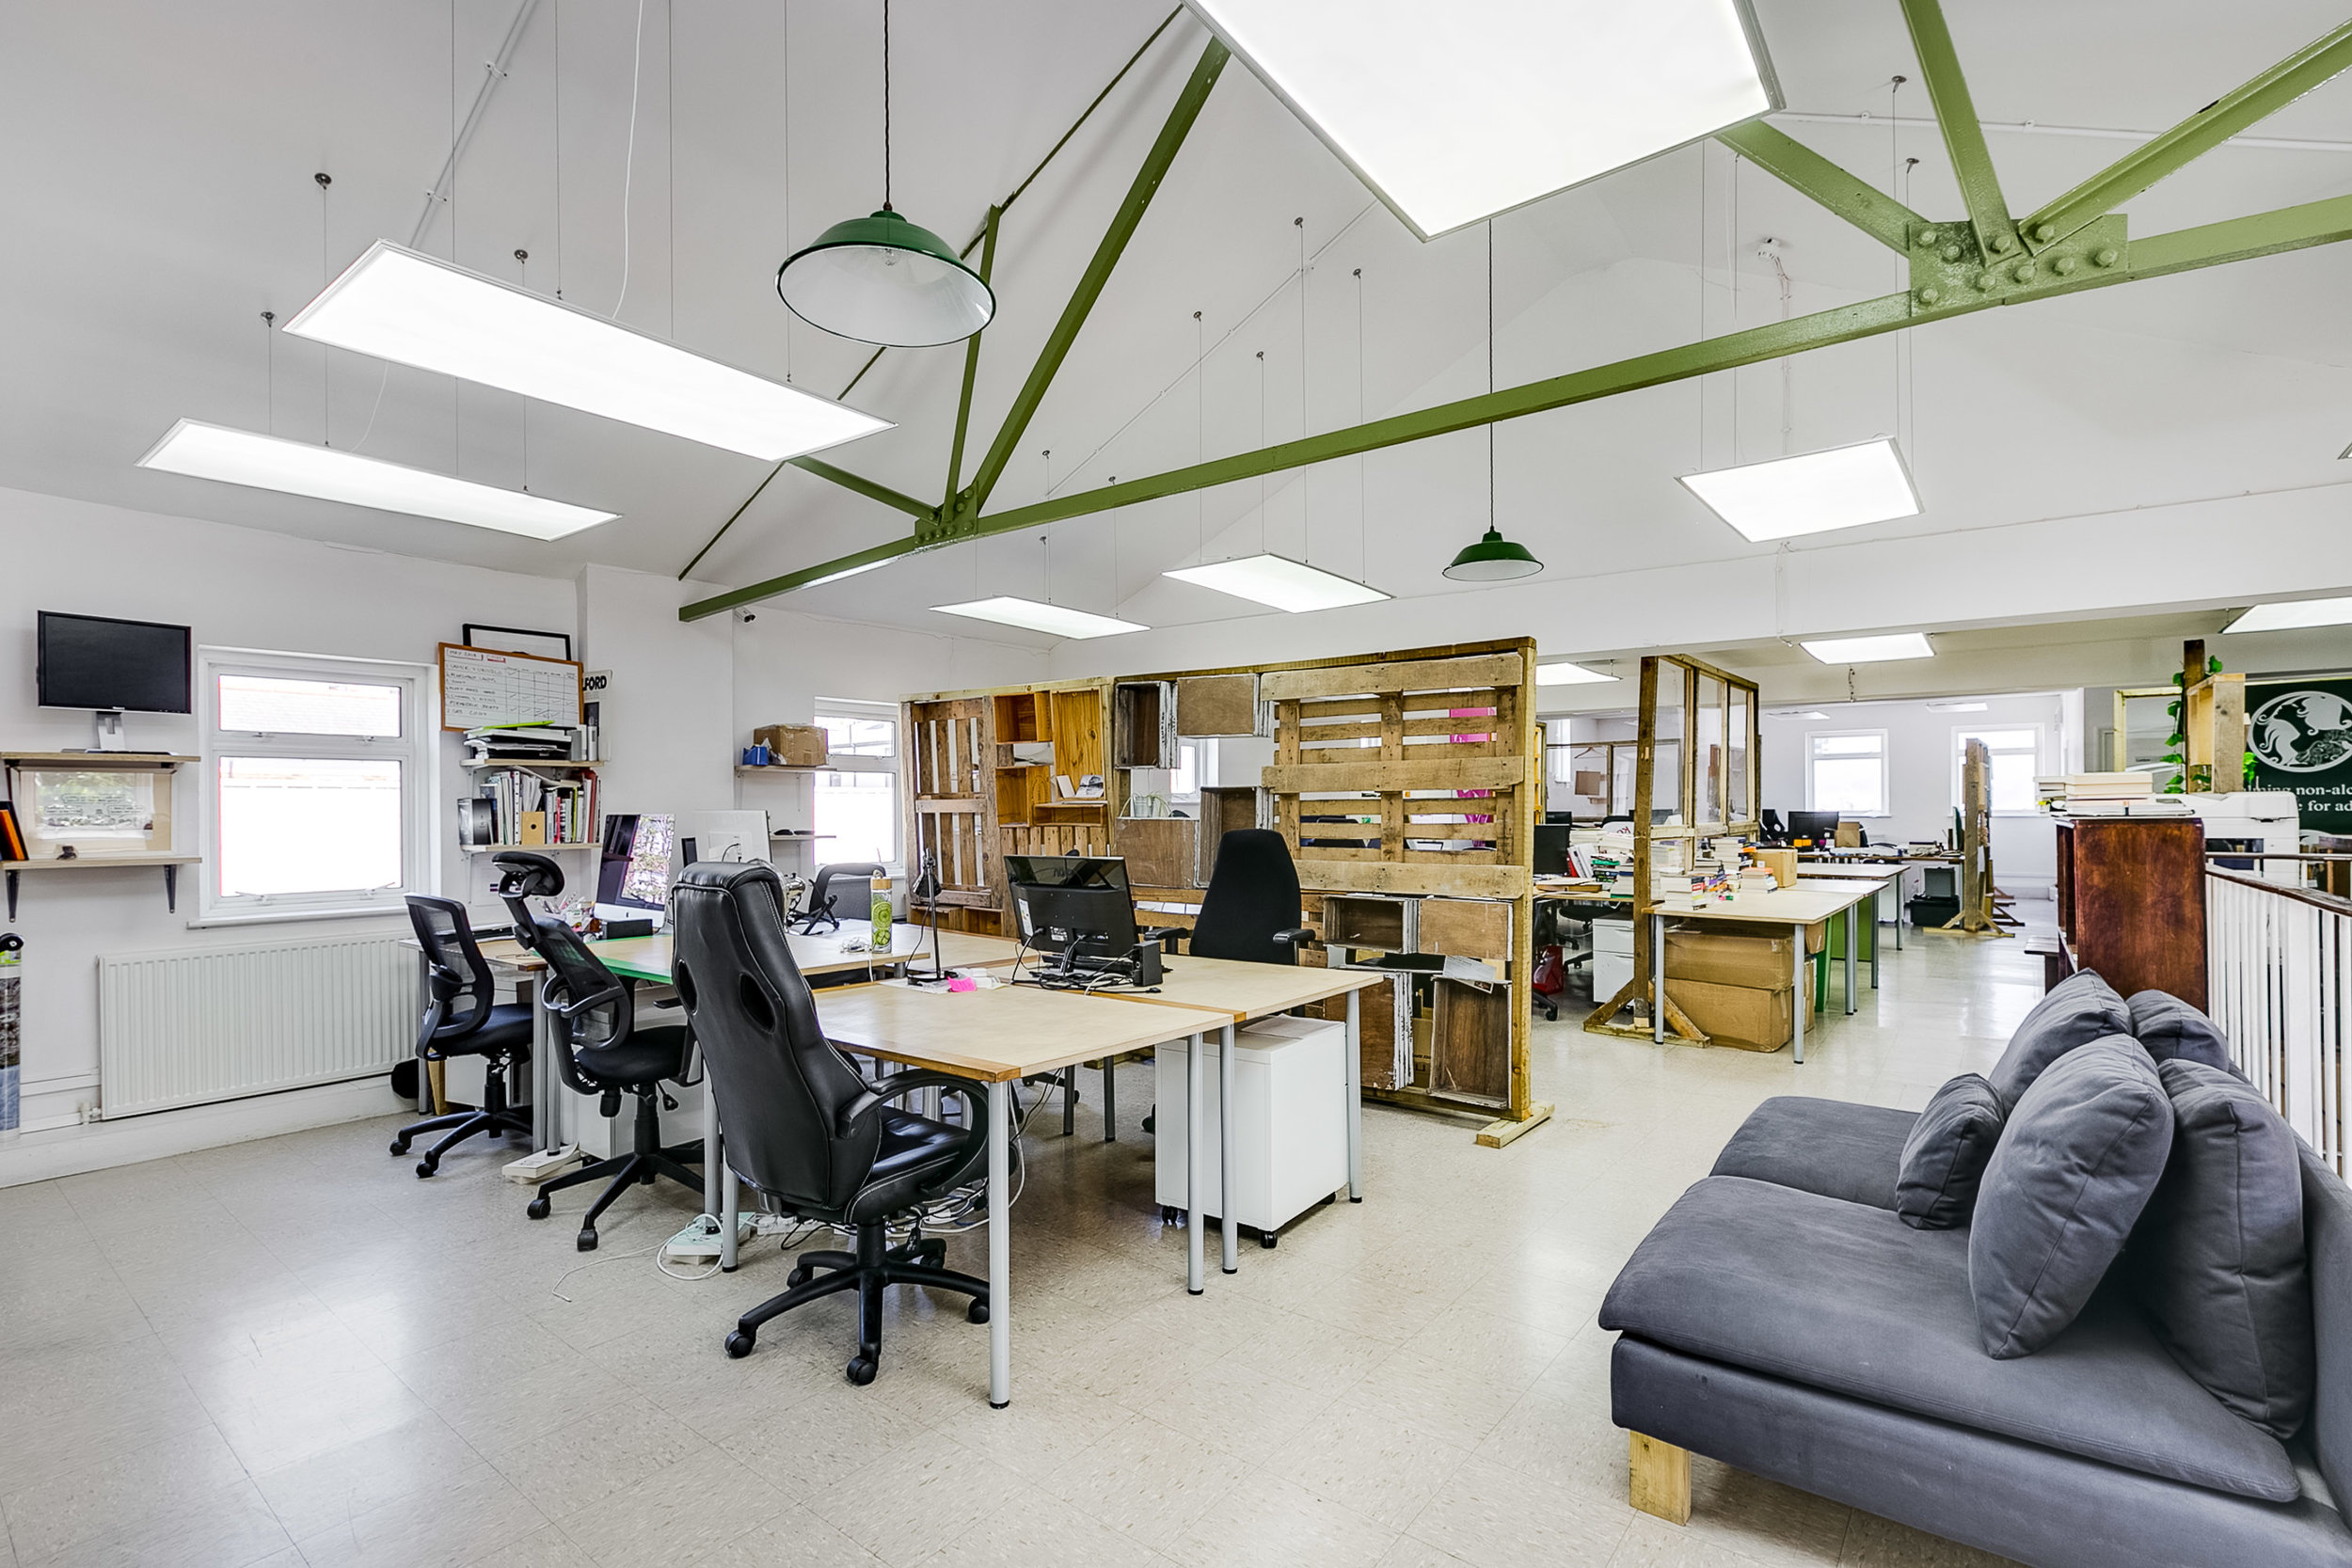 House Membership - For those who need a desk to call their own. This entitles you to your own 24/7 space, fully equipped with lockable storage, space for multiple screens and unlimited access to meeting rooms. By sitting with the same great people every day,you quickly become part of the community. Available at The Greenhouse N16 and The Greenhouse E9 only.